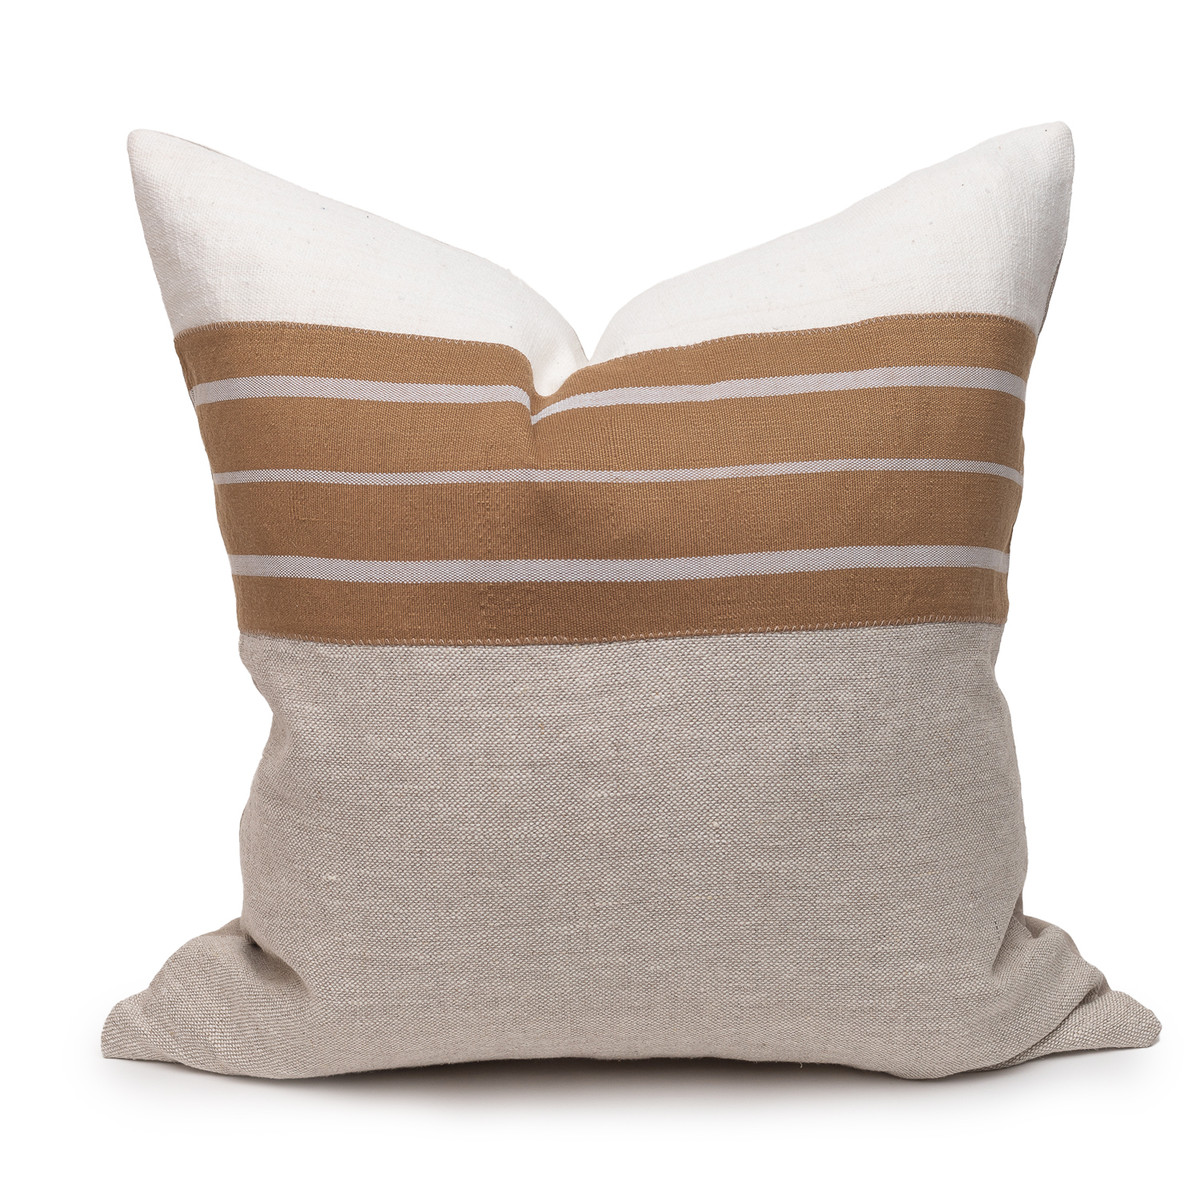 Mojave Linen Aso Oke Luxe Vintage Pillow - 22 - Front